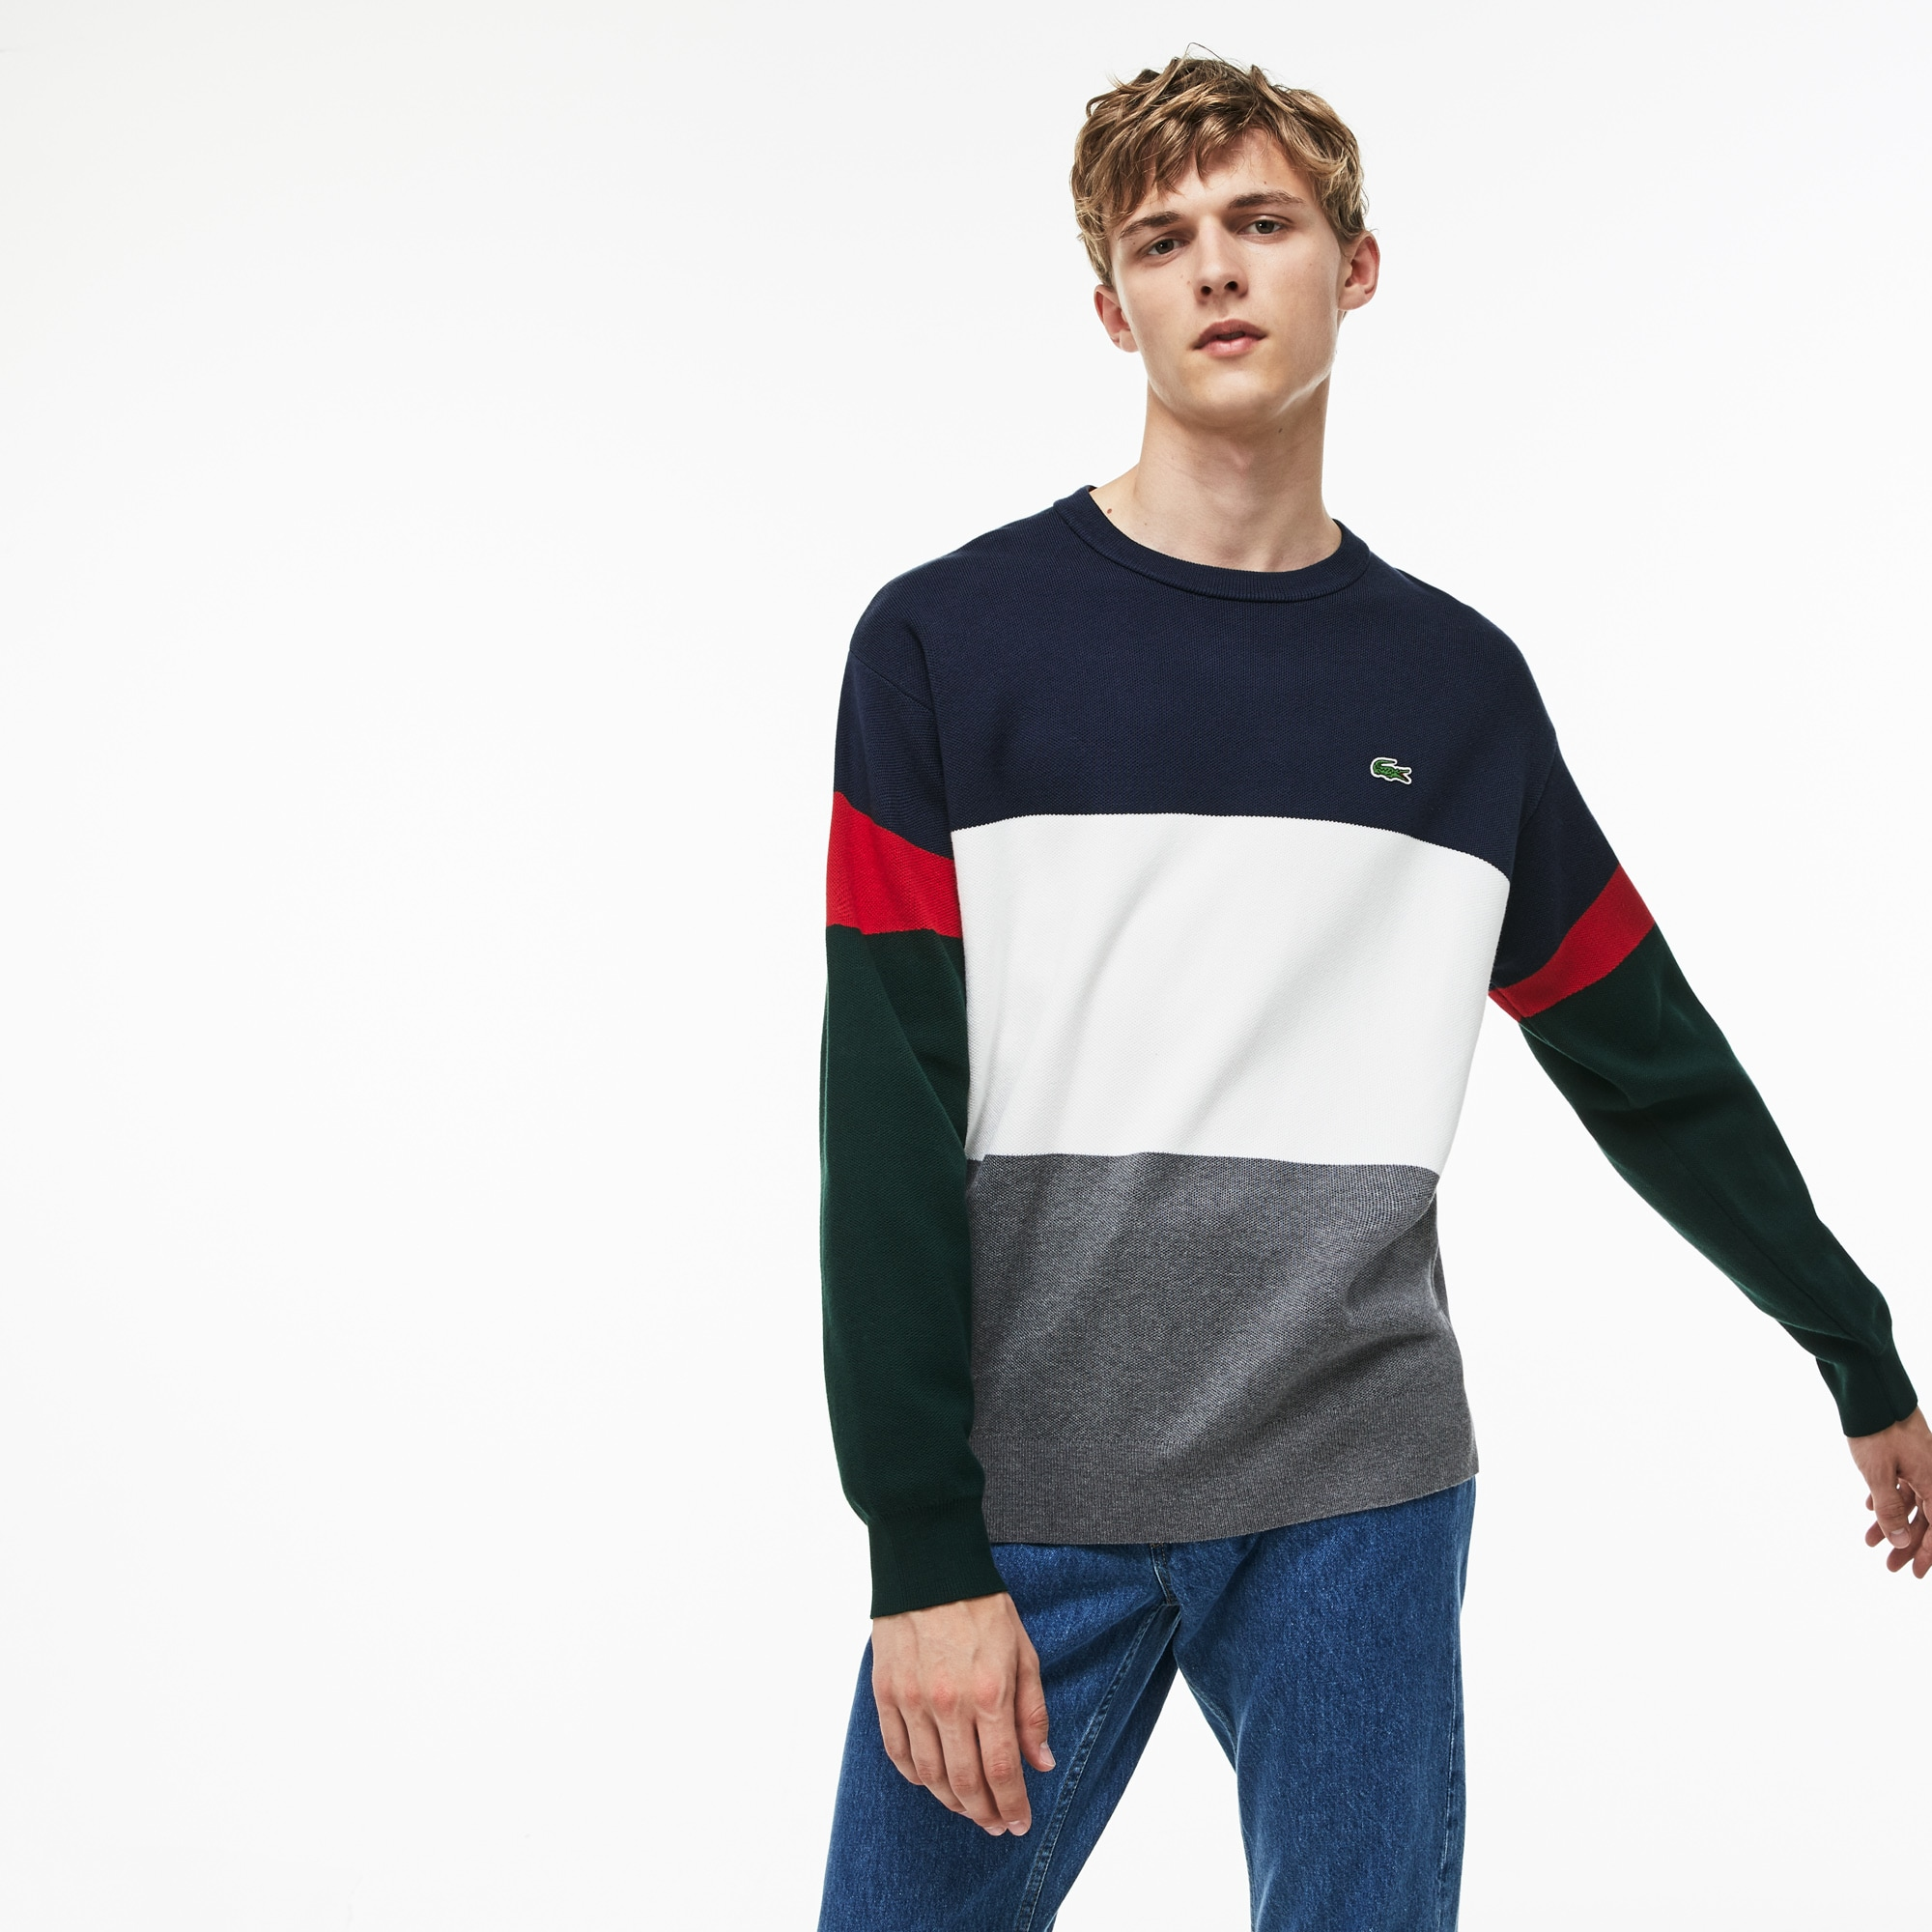 Men's Crew Neck Colorblock Flat Ribbed Cotton Sweater